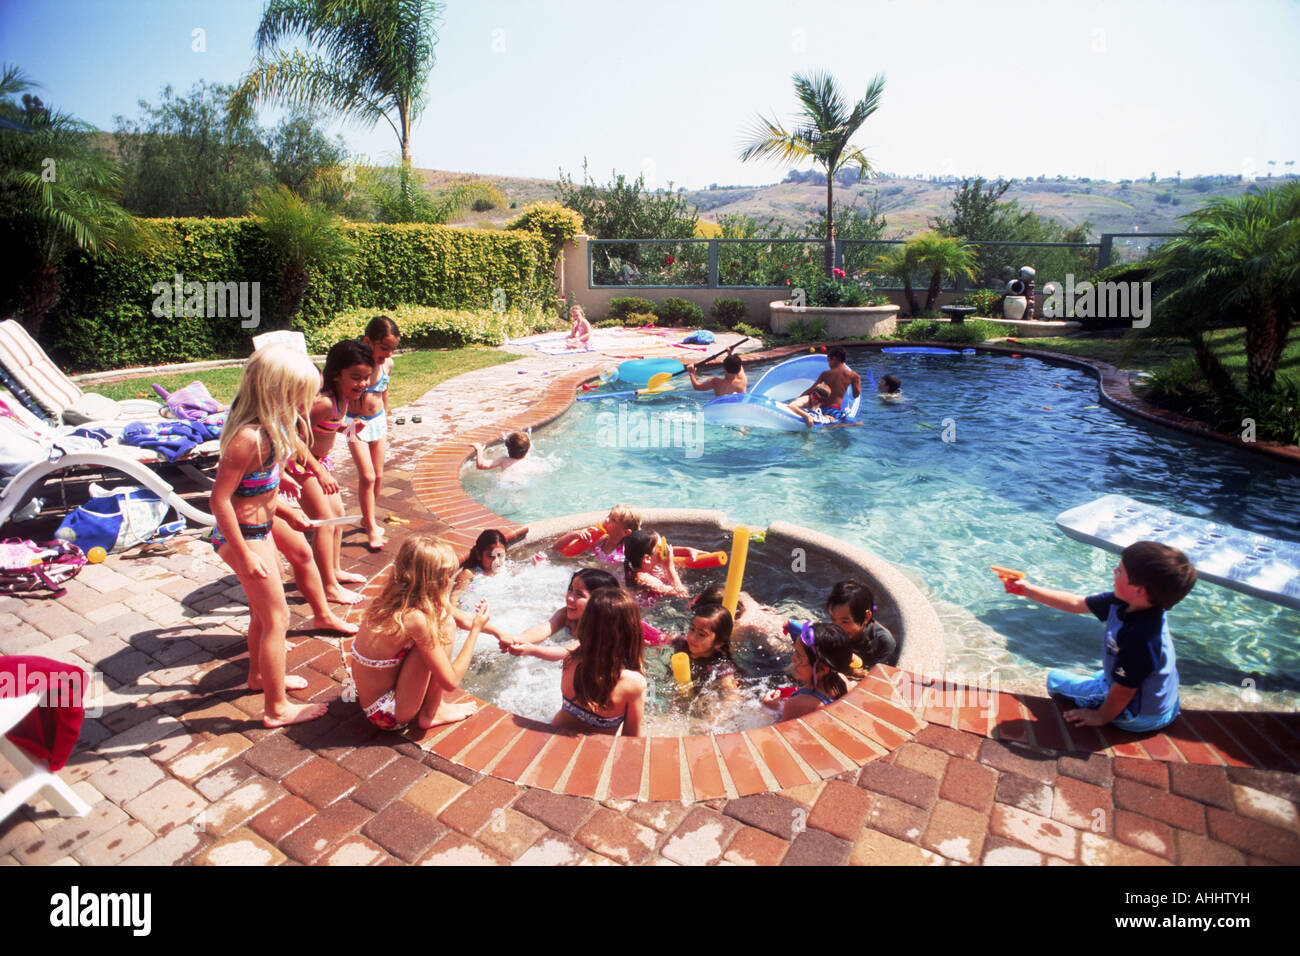 Kids Playing In Backyard Swimming Pool And Jacuzzi Stock Photo Alamy